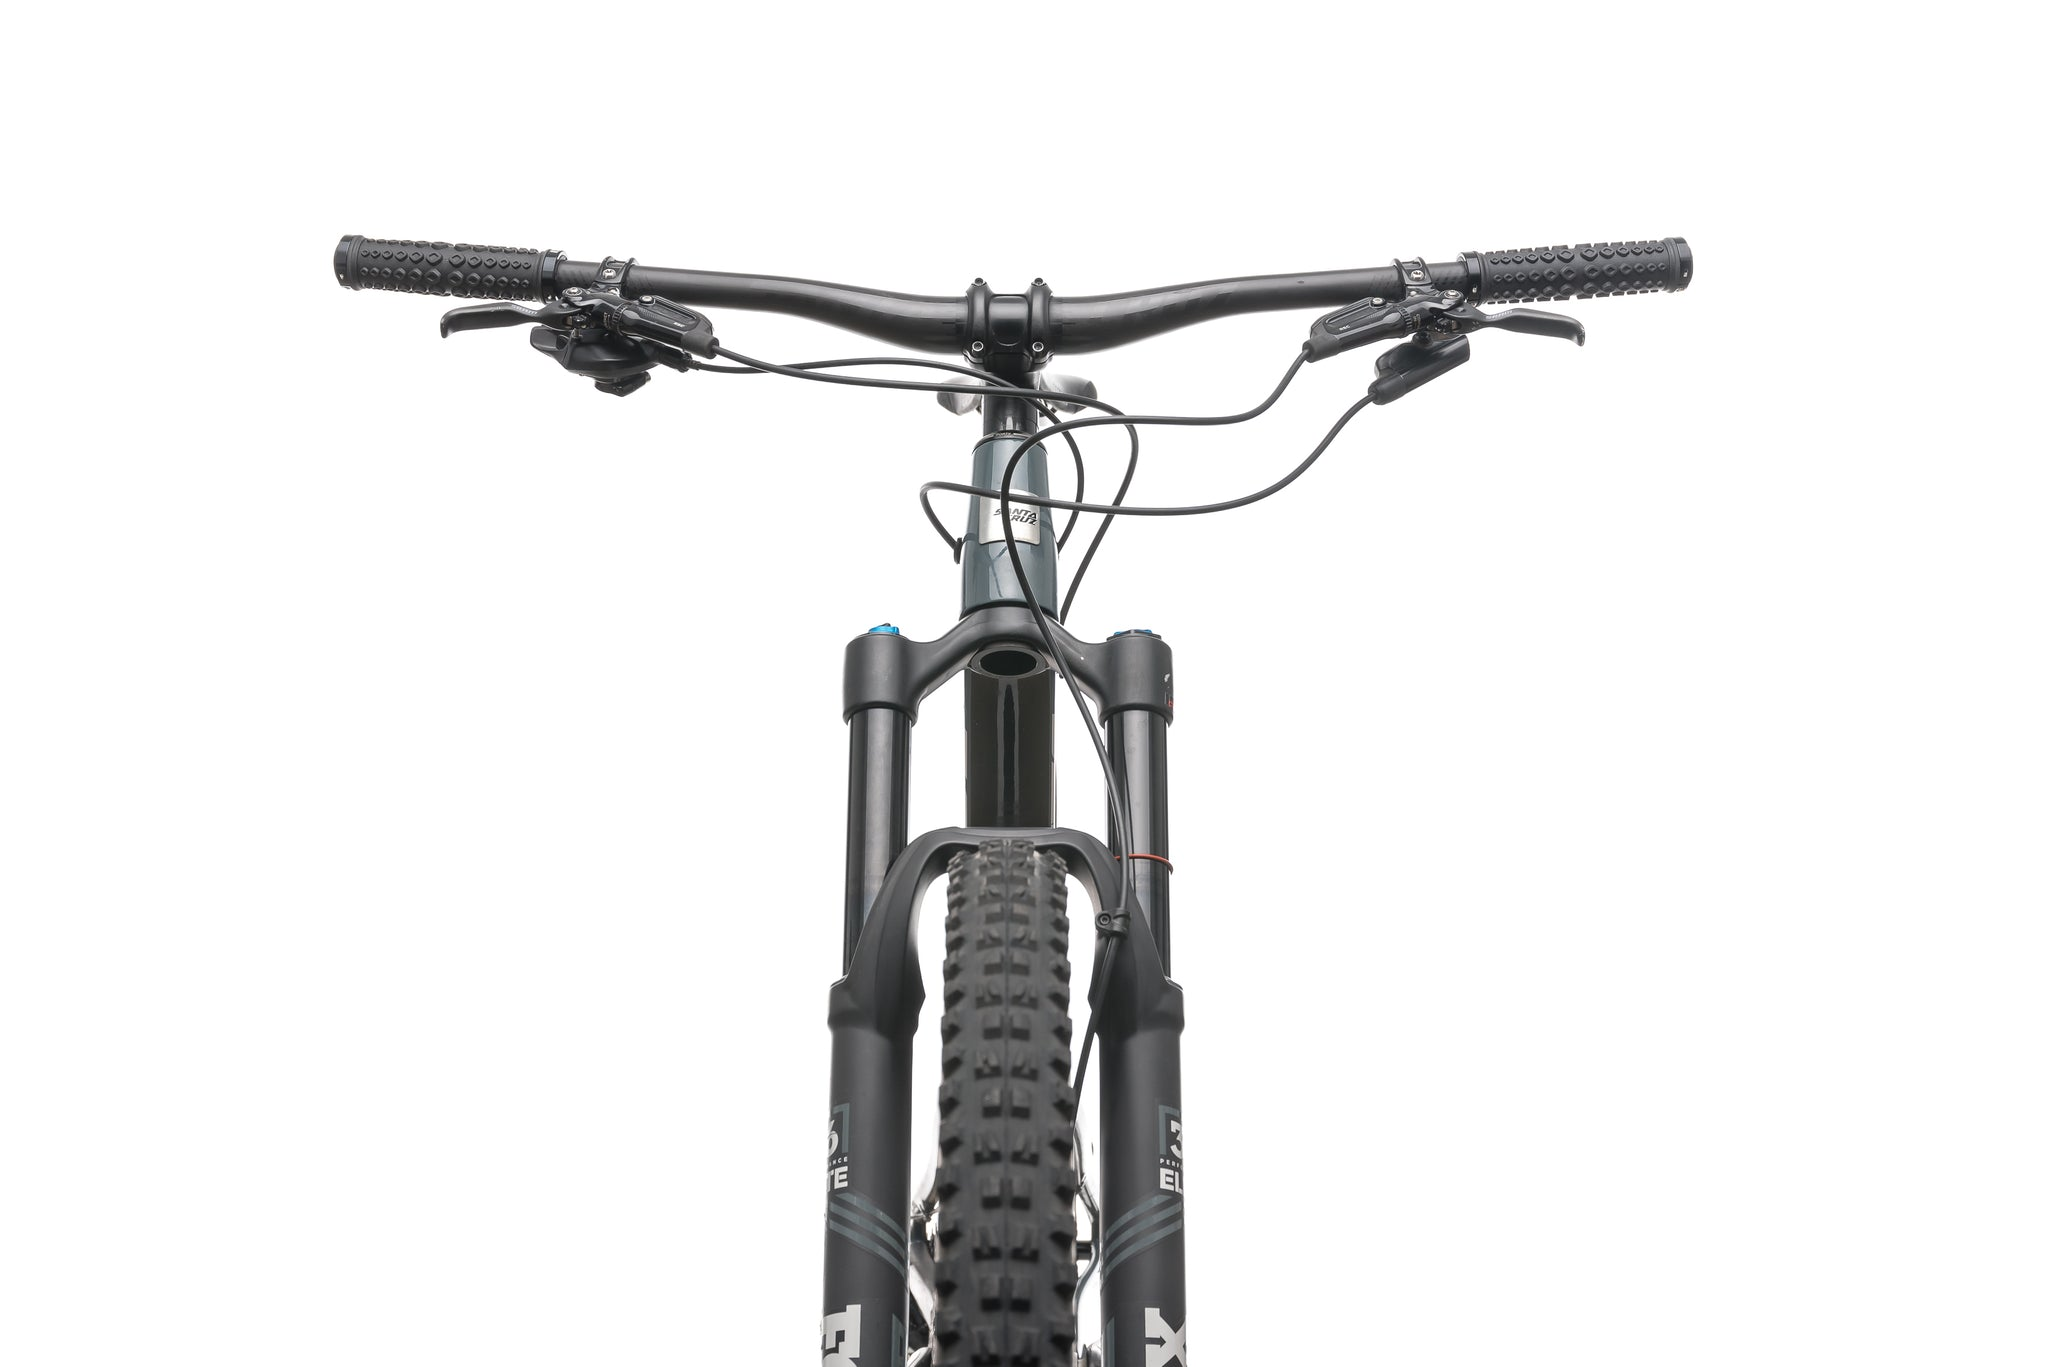 Santa Cruz Hightower LT 1 CC X-Large Bike - 2018